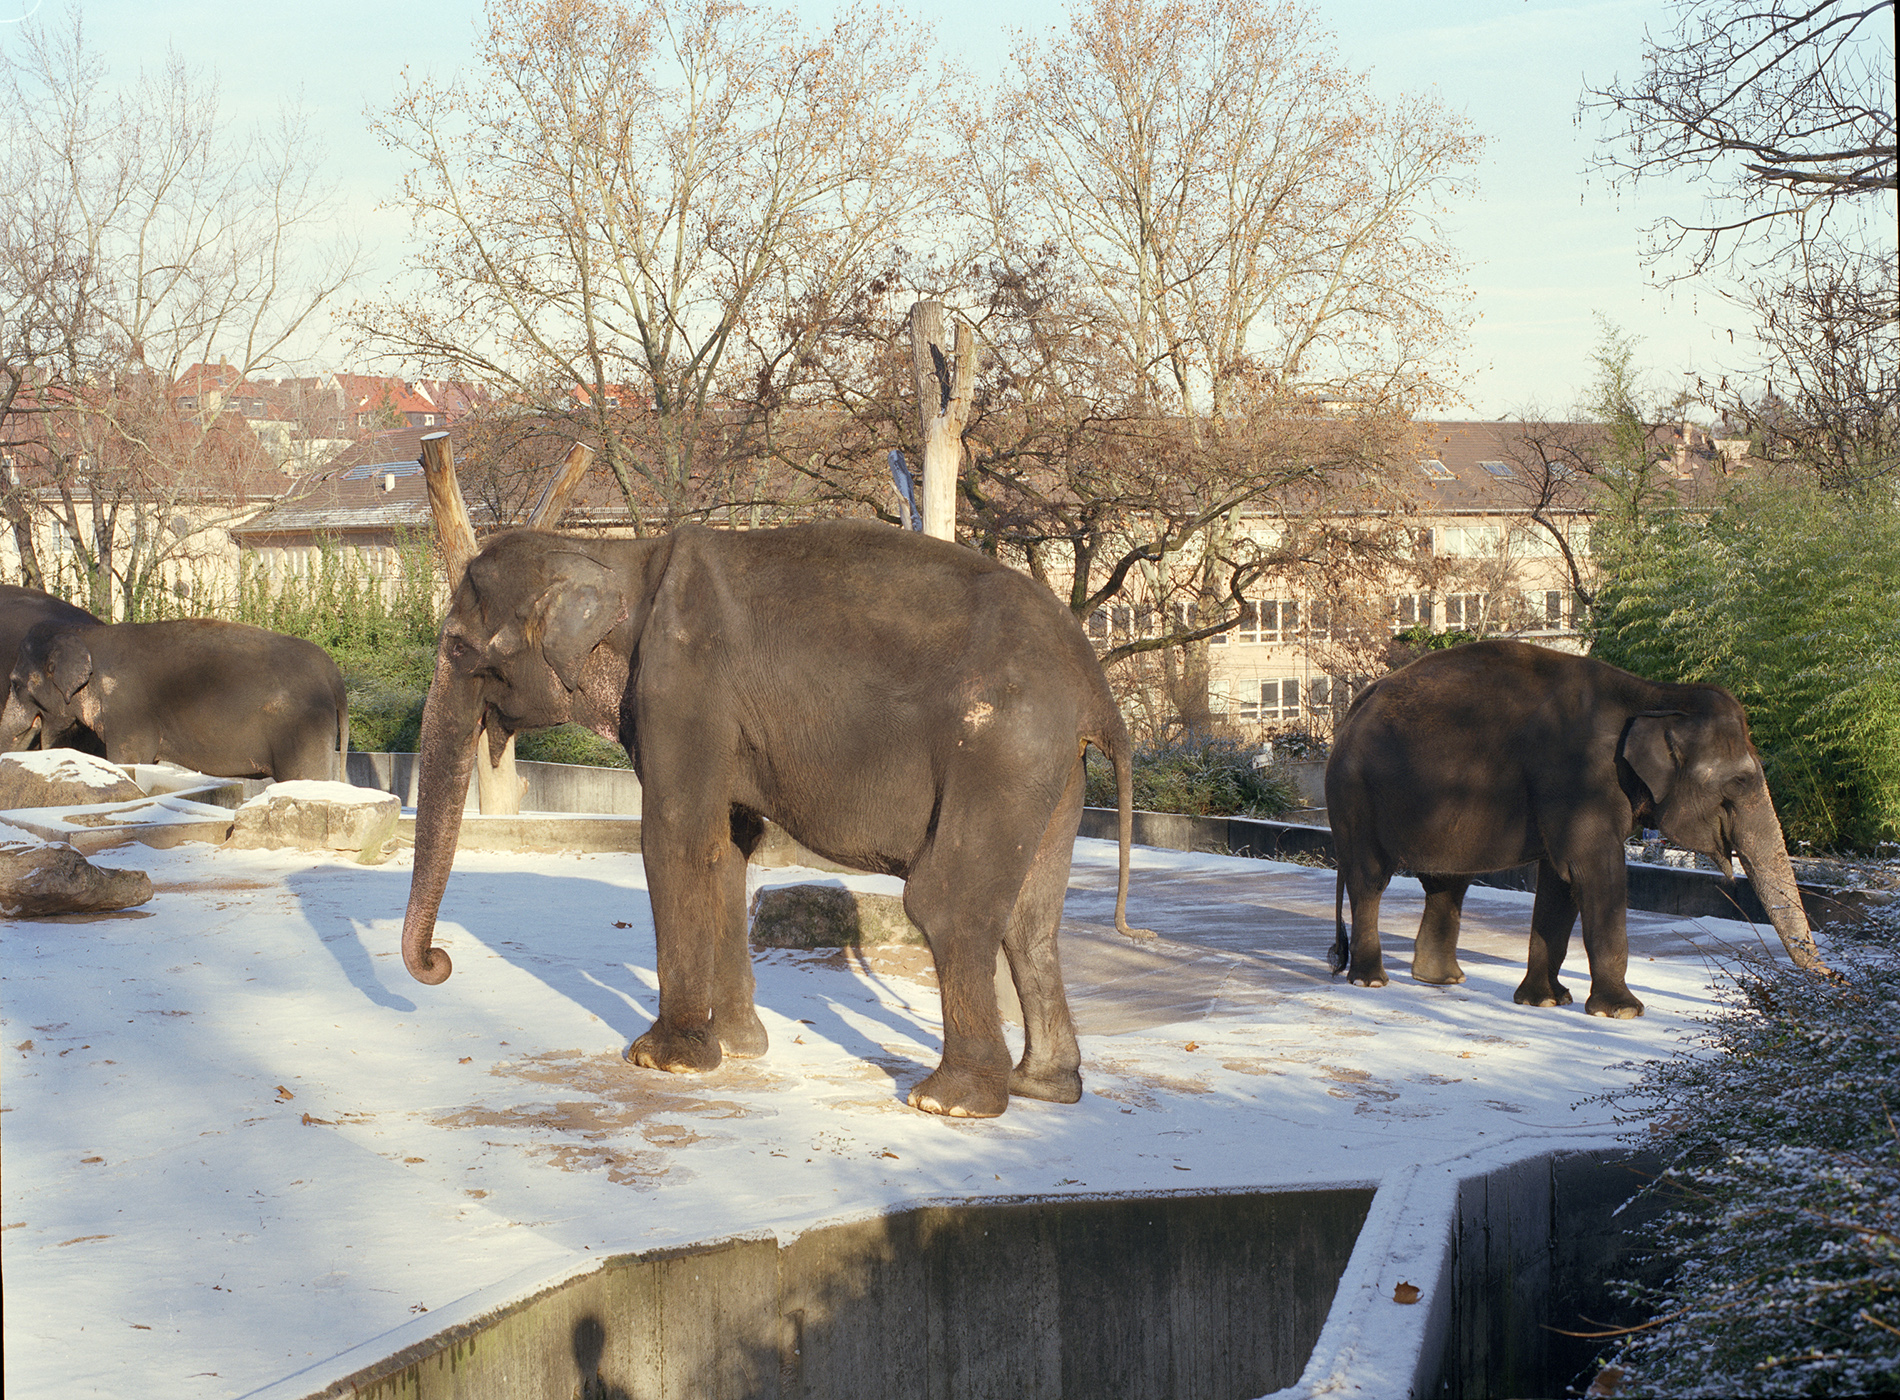 Elephants at Stuttgart Zoo